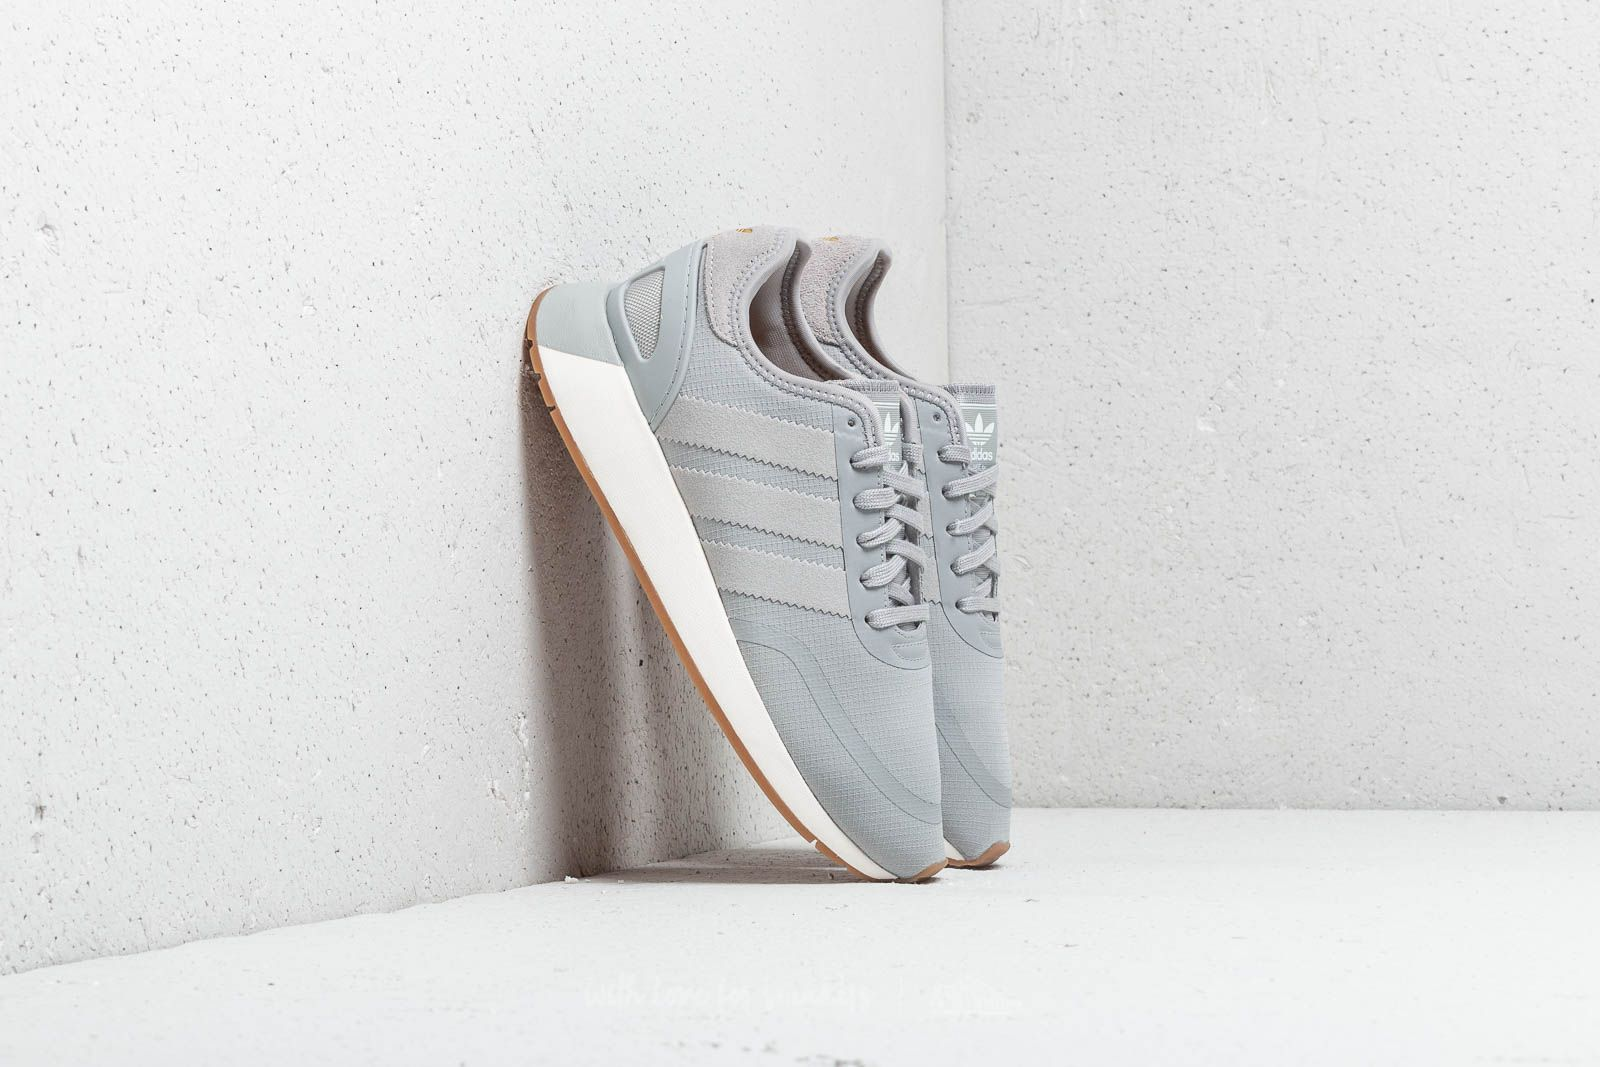 adidas N-5923 W Gretwo  Gretwo  Gum at a great price 90 € 409737b72